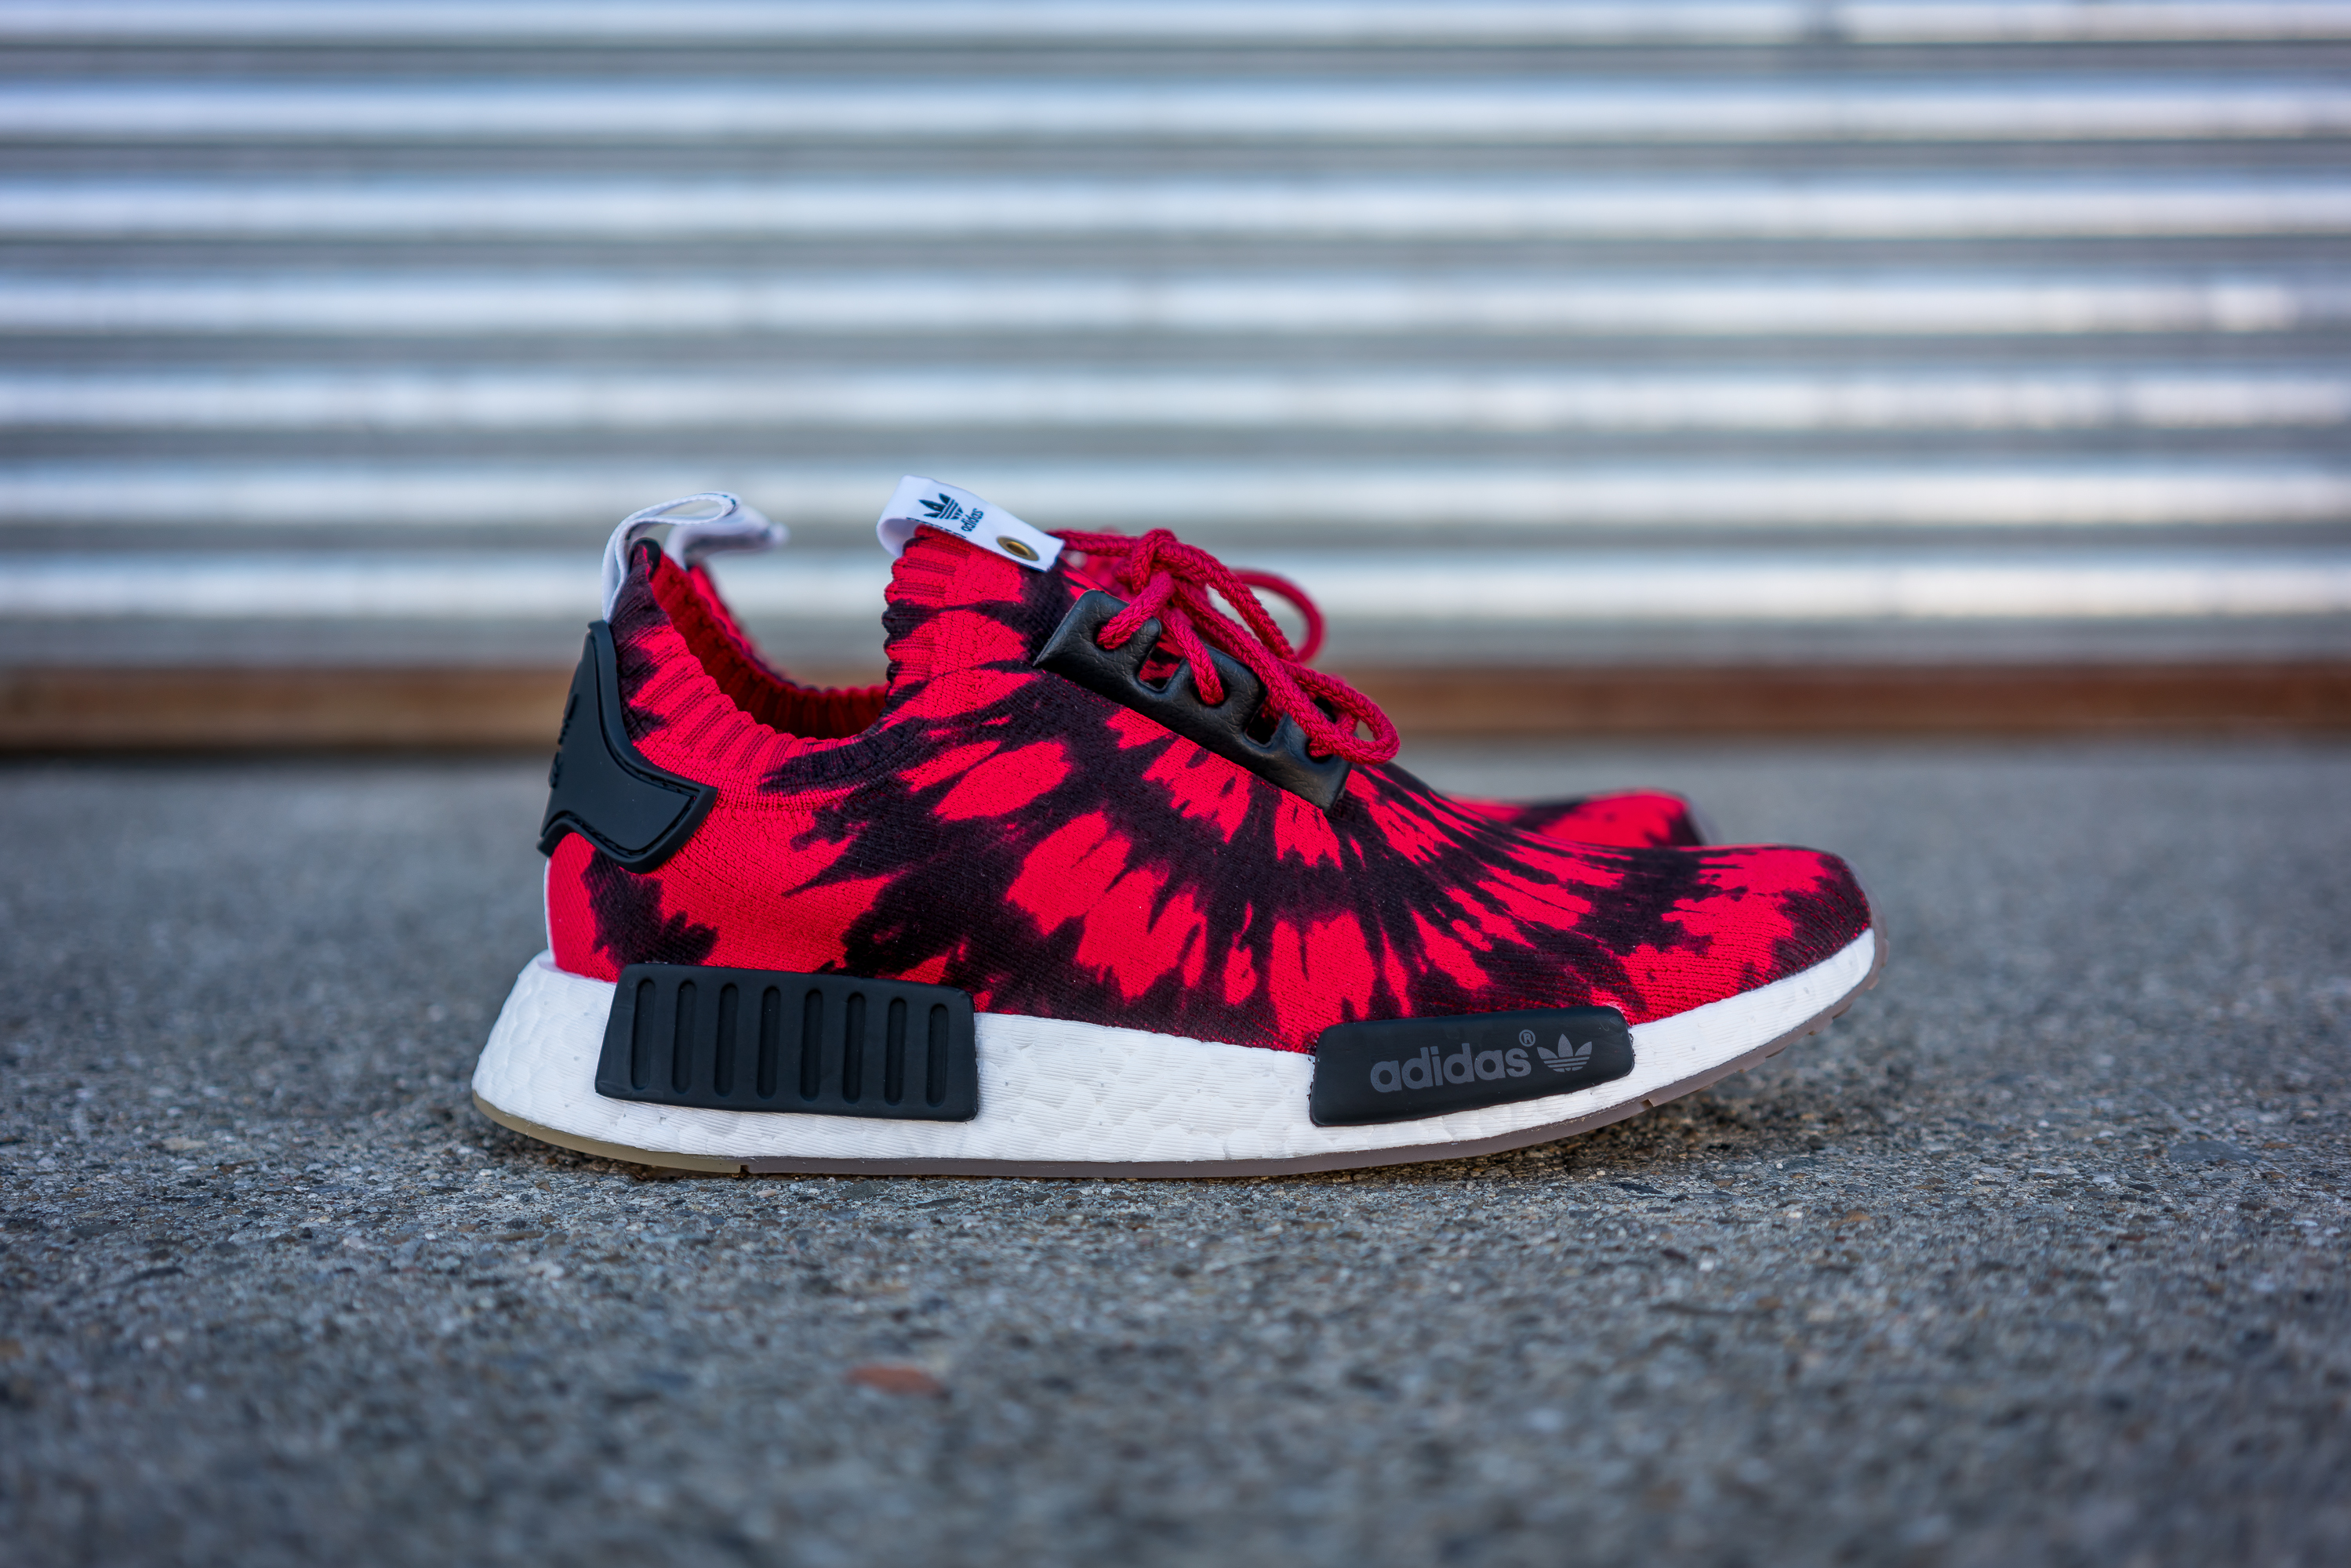 Adidas Nmd Louis Vuitton Supremo